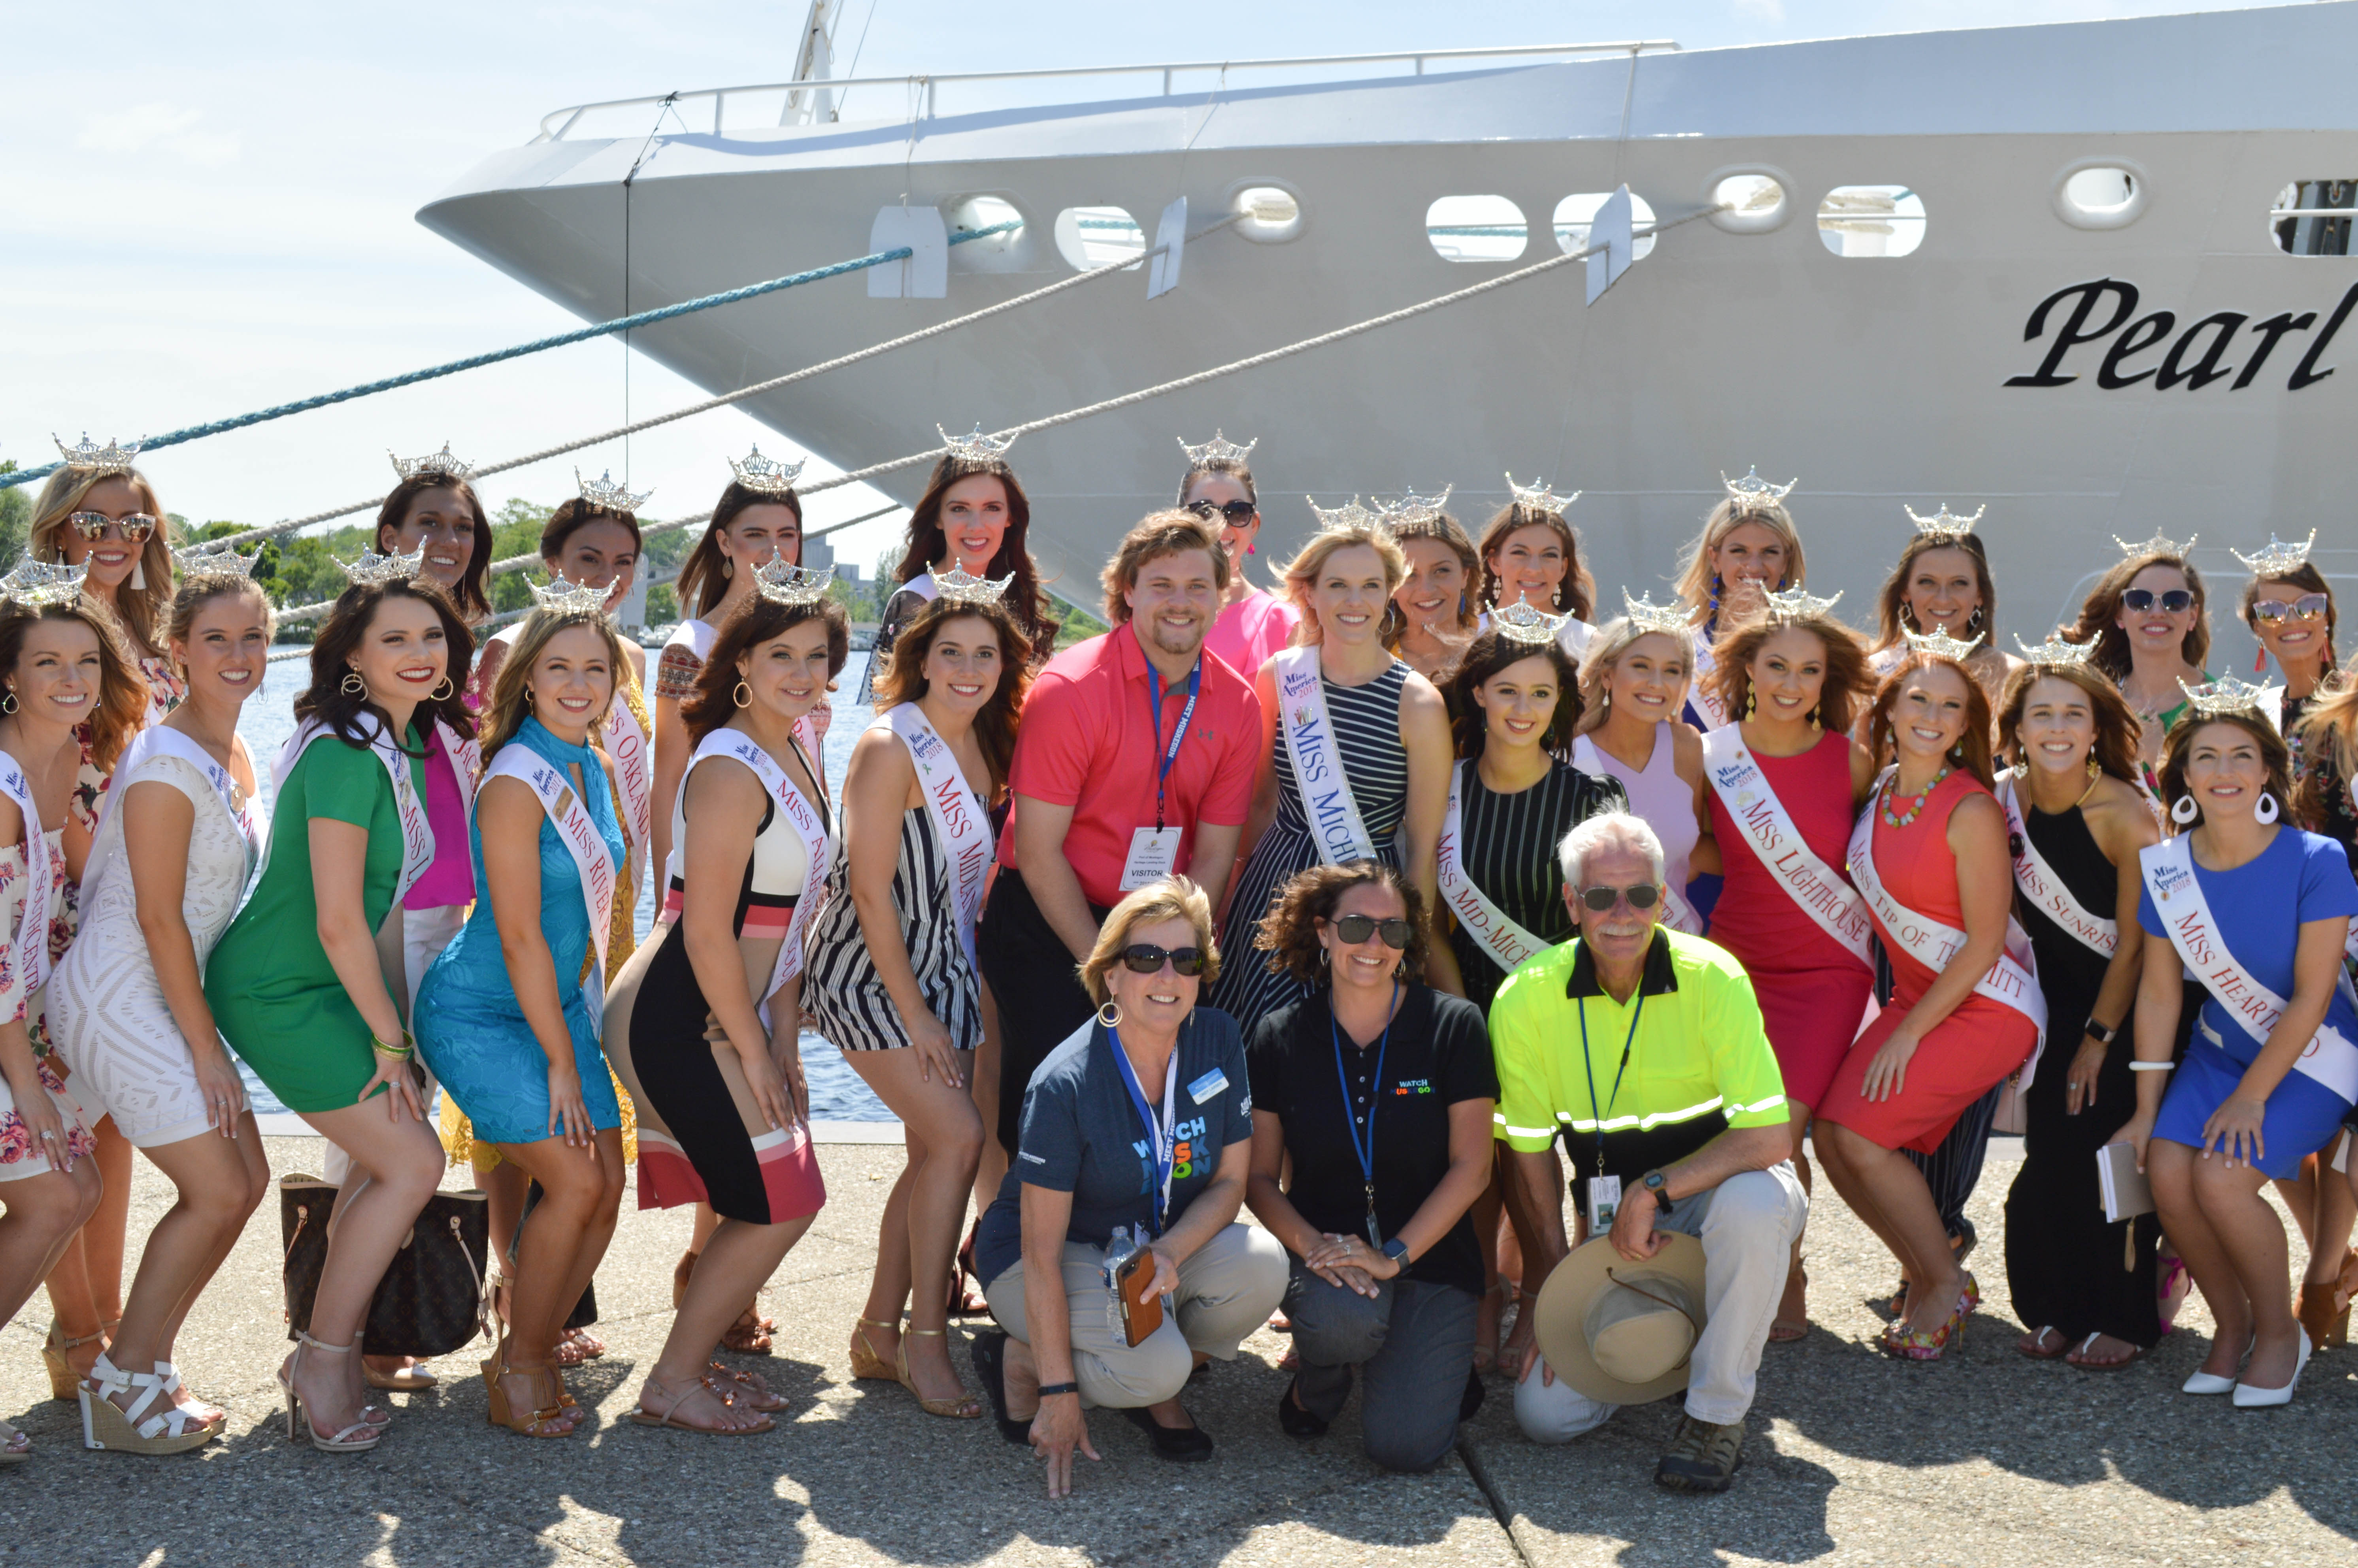 Miss Michigan Pageant Contestants in front of Pearl Mist cruise ship